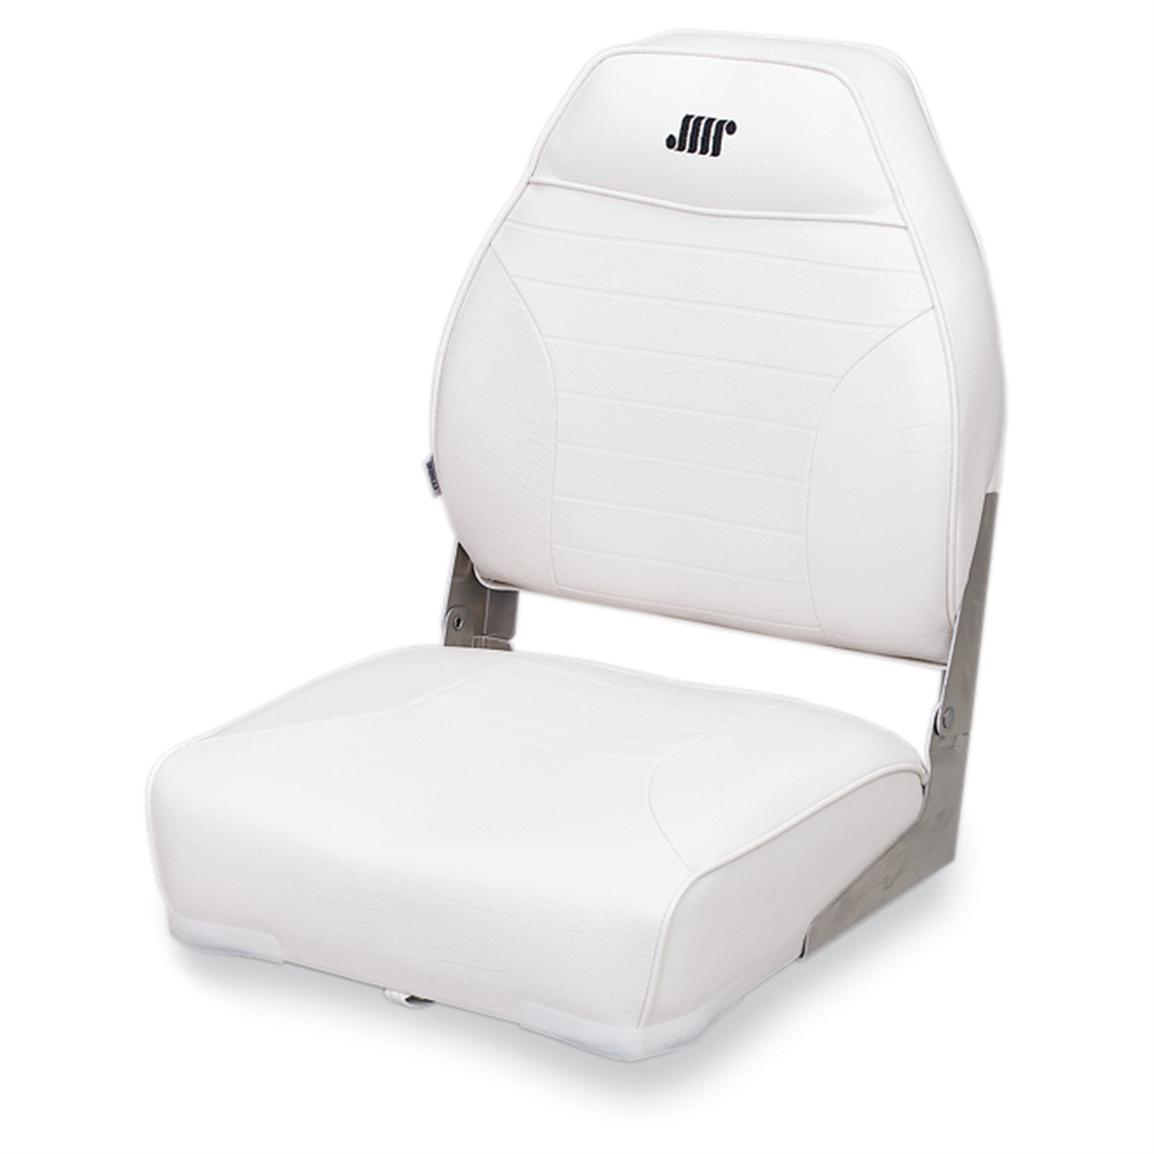 Wise Premium Folding Fishing Boat Seat, White